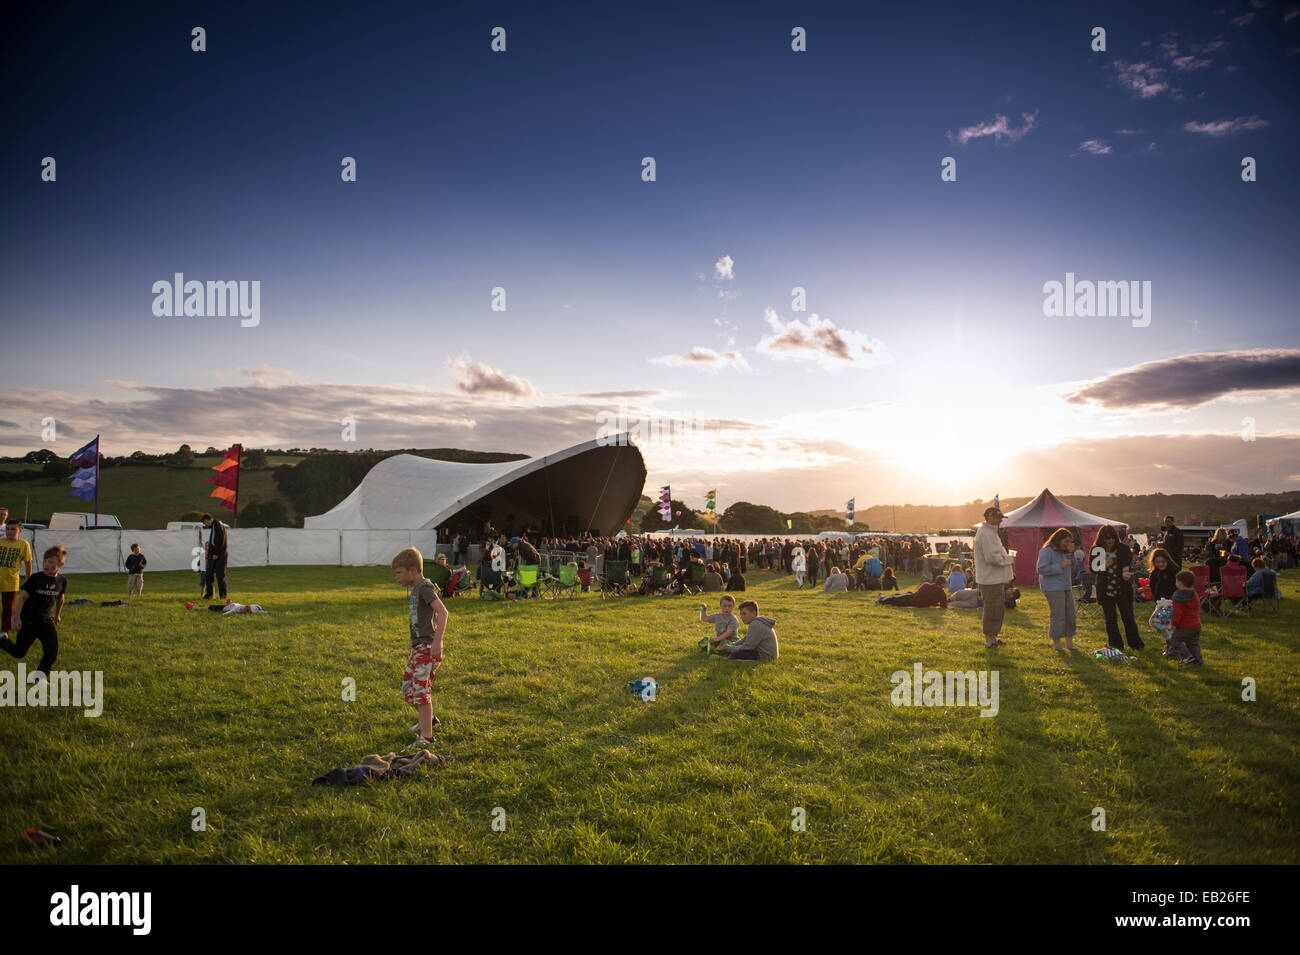 Sunset over the  Big Tribute music festival Aberystwyth UK August bank holiday 2014 - Stock Image